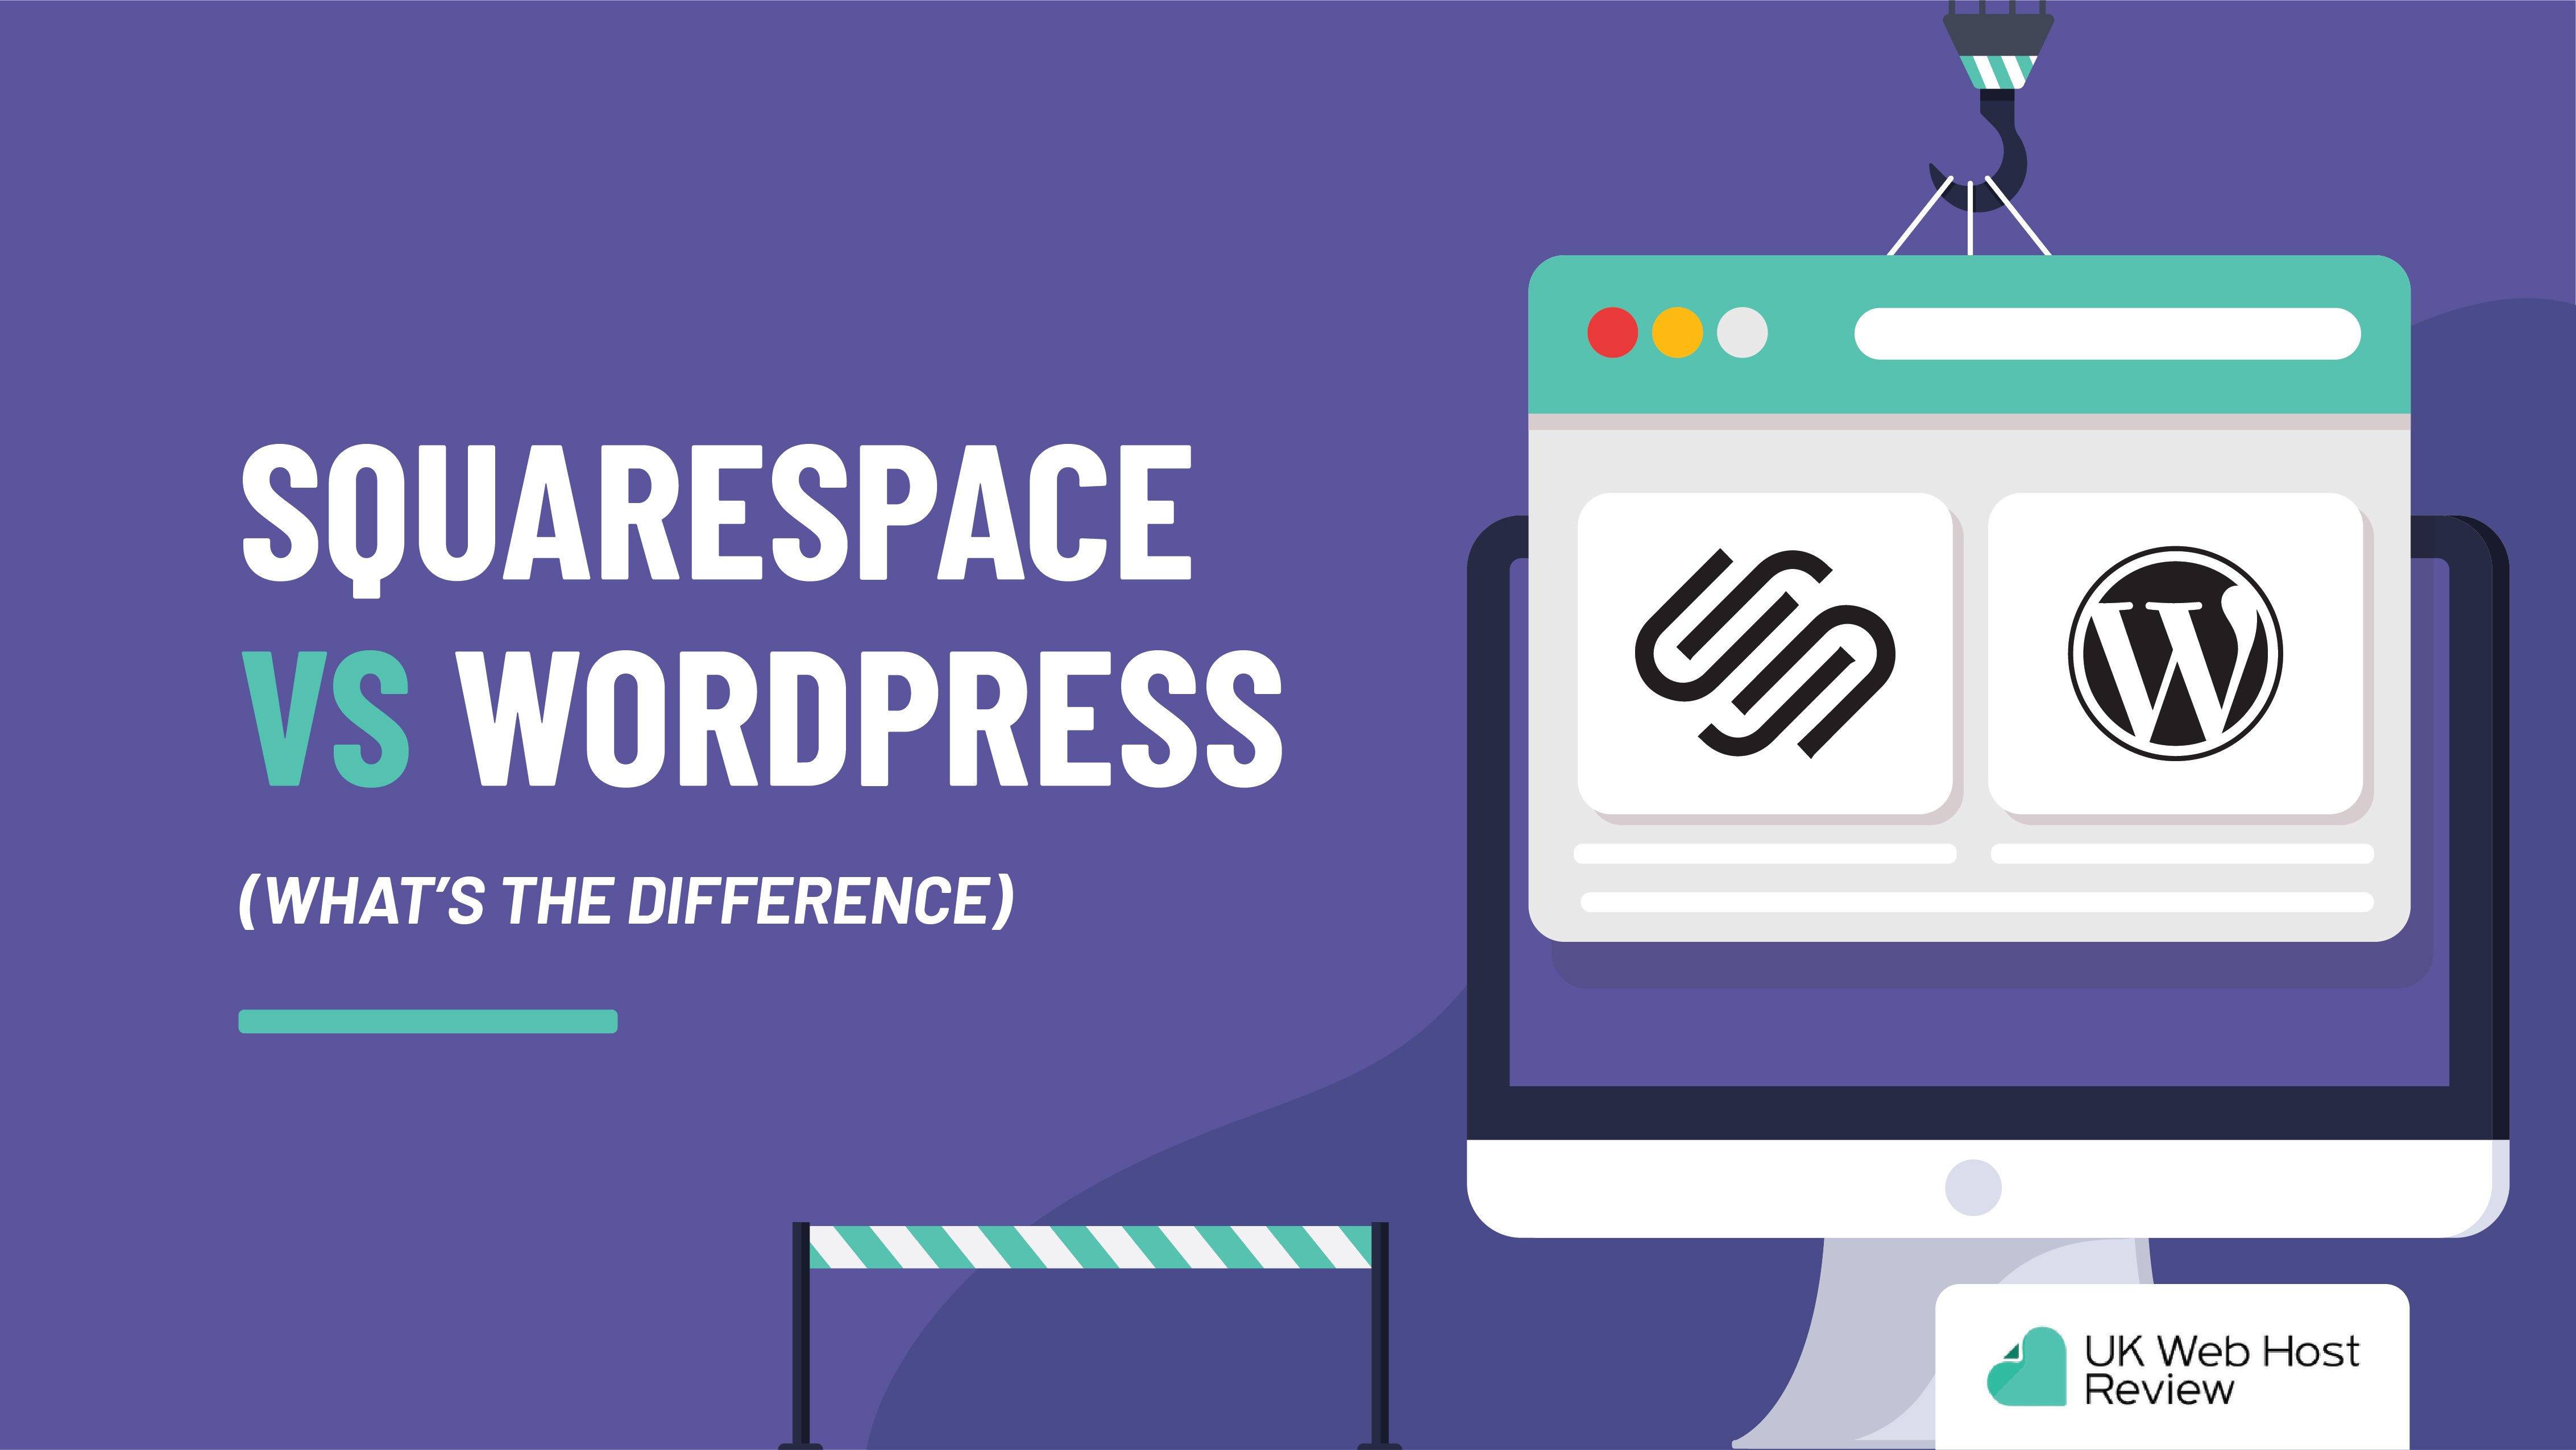 SquareSpace vs WordPress (What's the Difference)